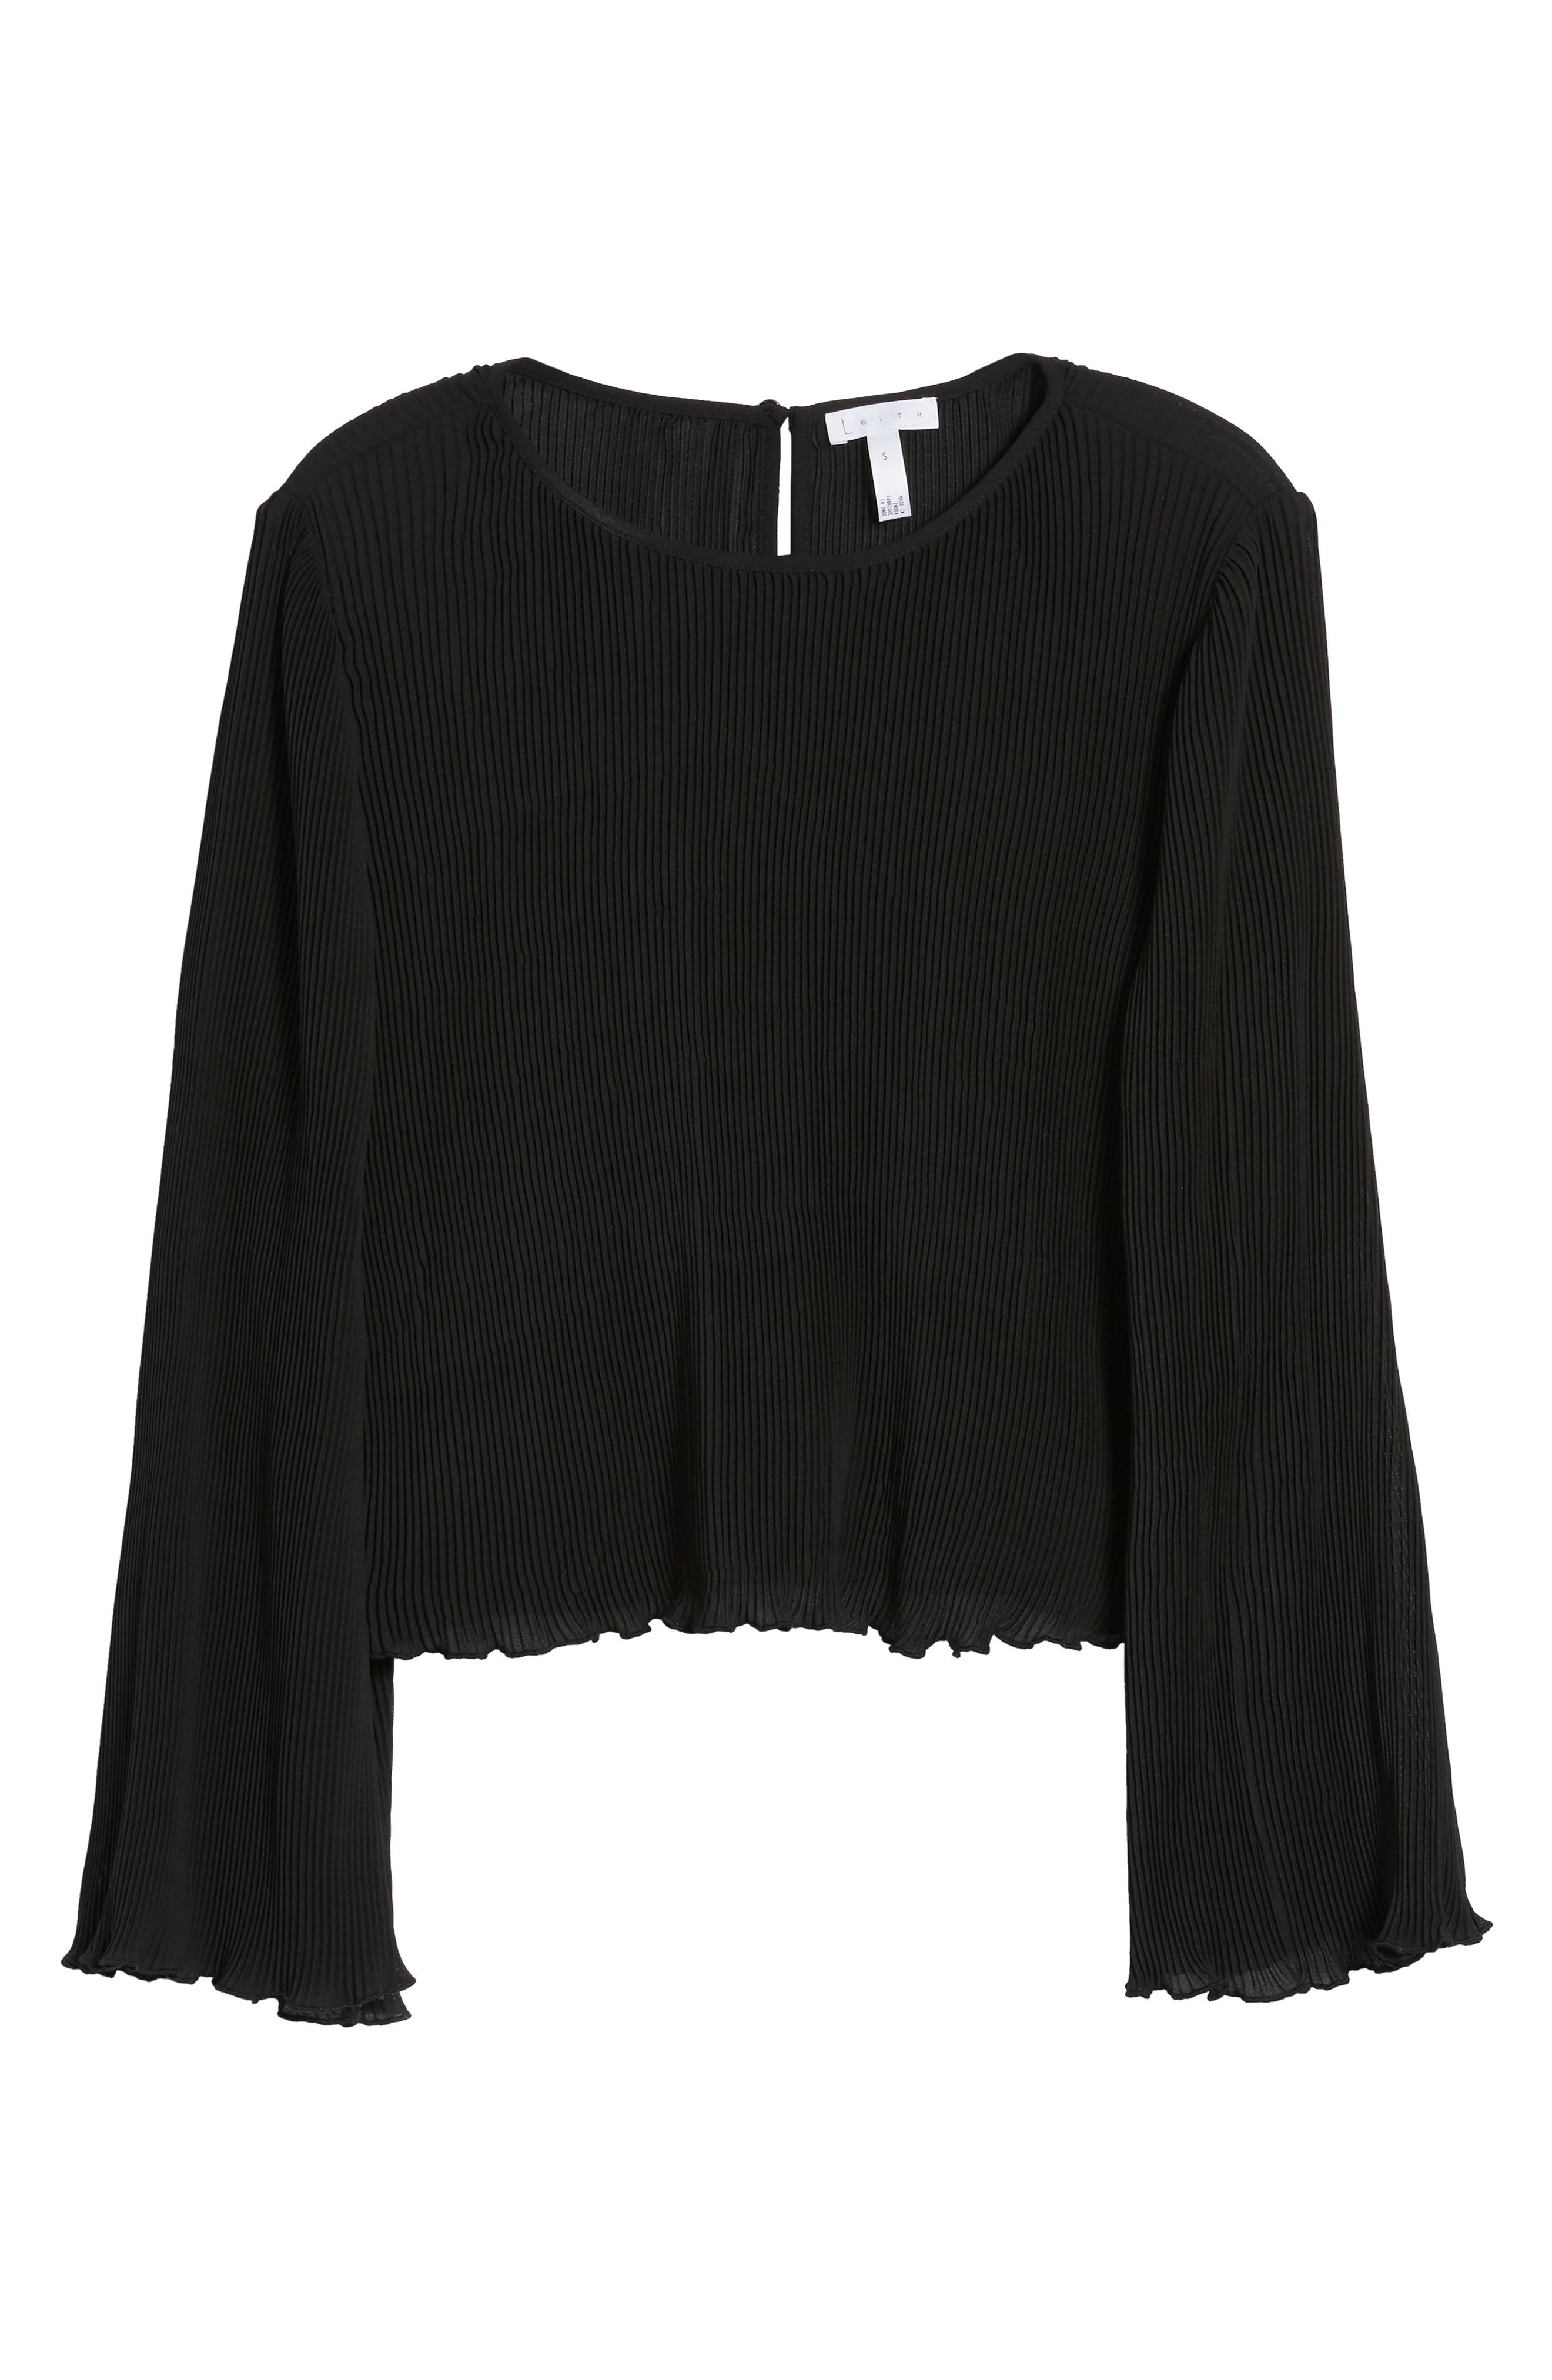 Pleated Bell Sleeve Top,                             Alternate thumbnail 6, color,                             001